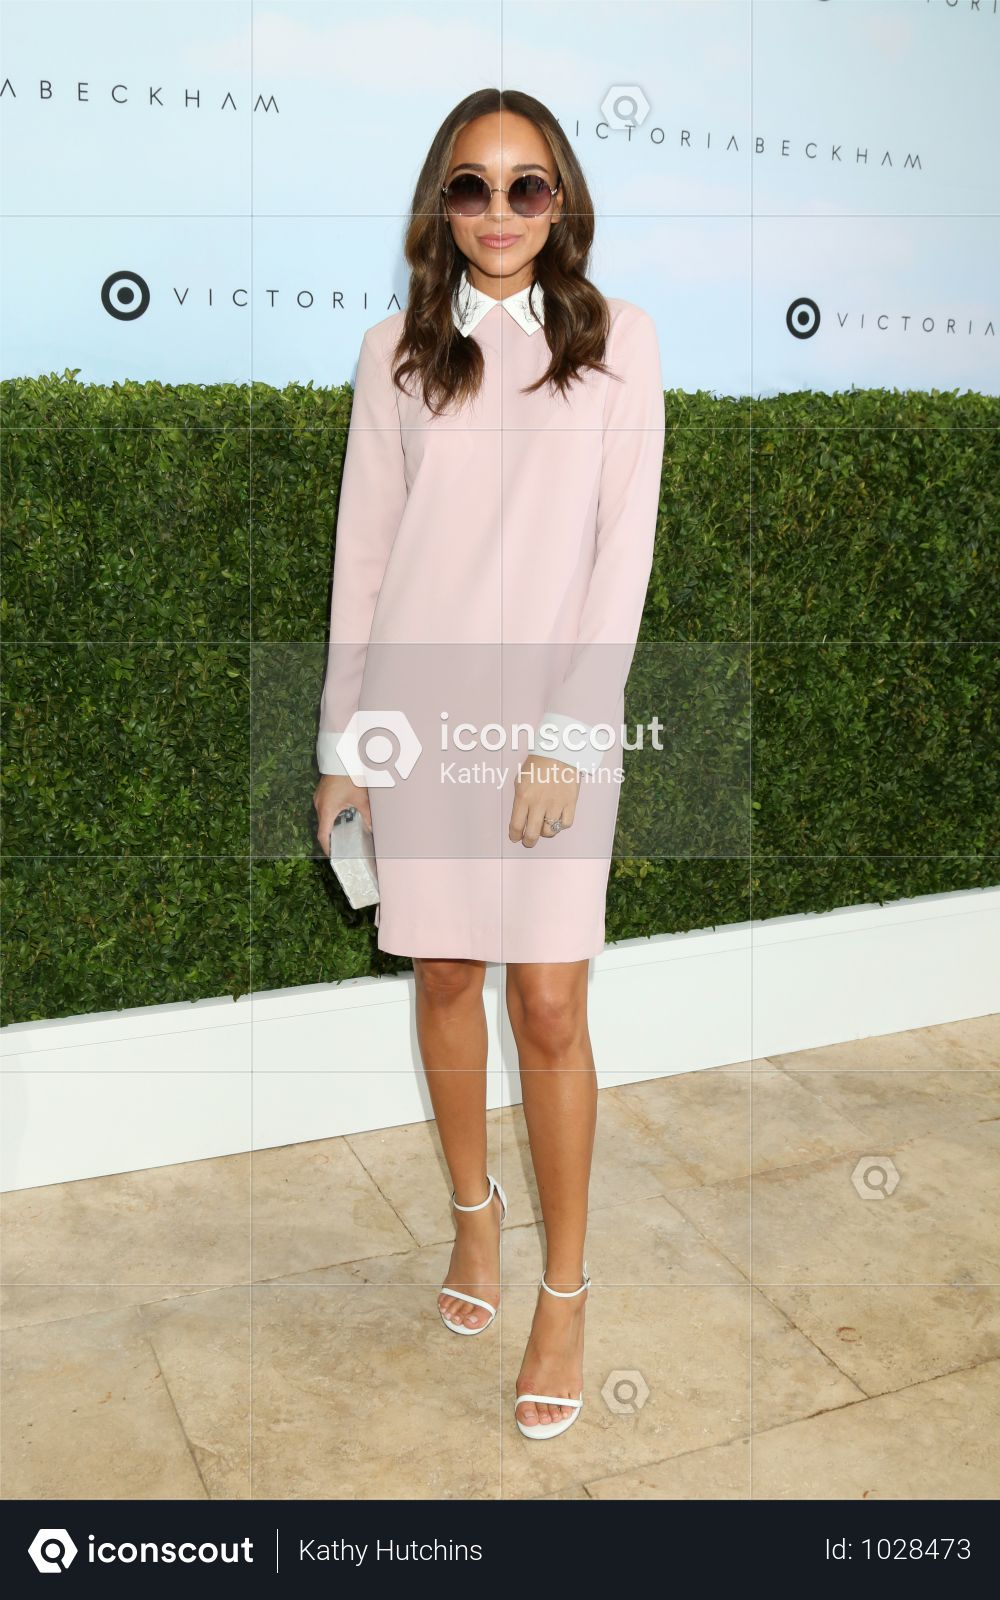 USA - Victoria Beckham For Target Launch Event - Los Angeles Photo